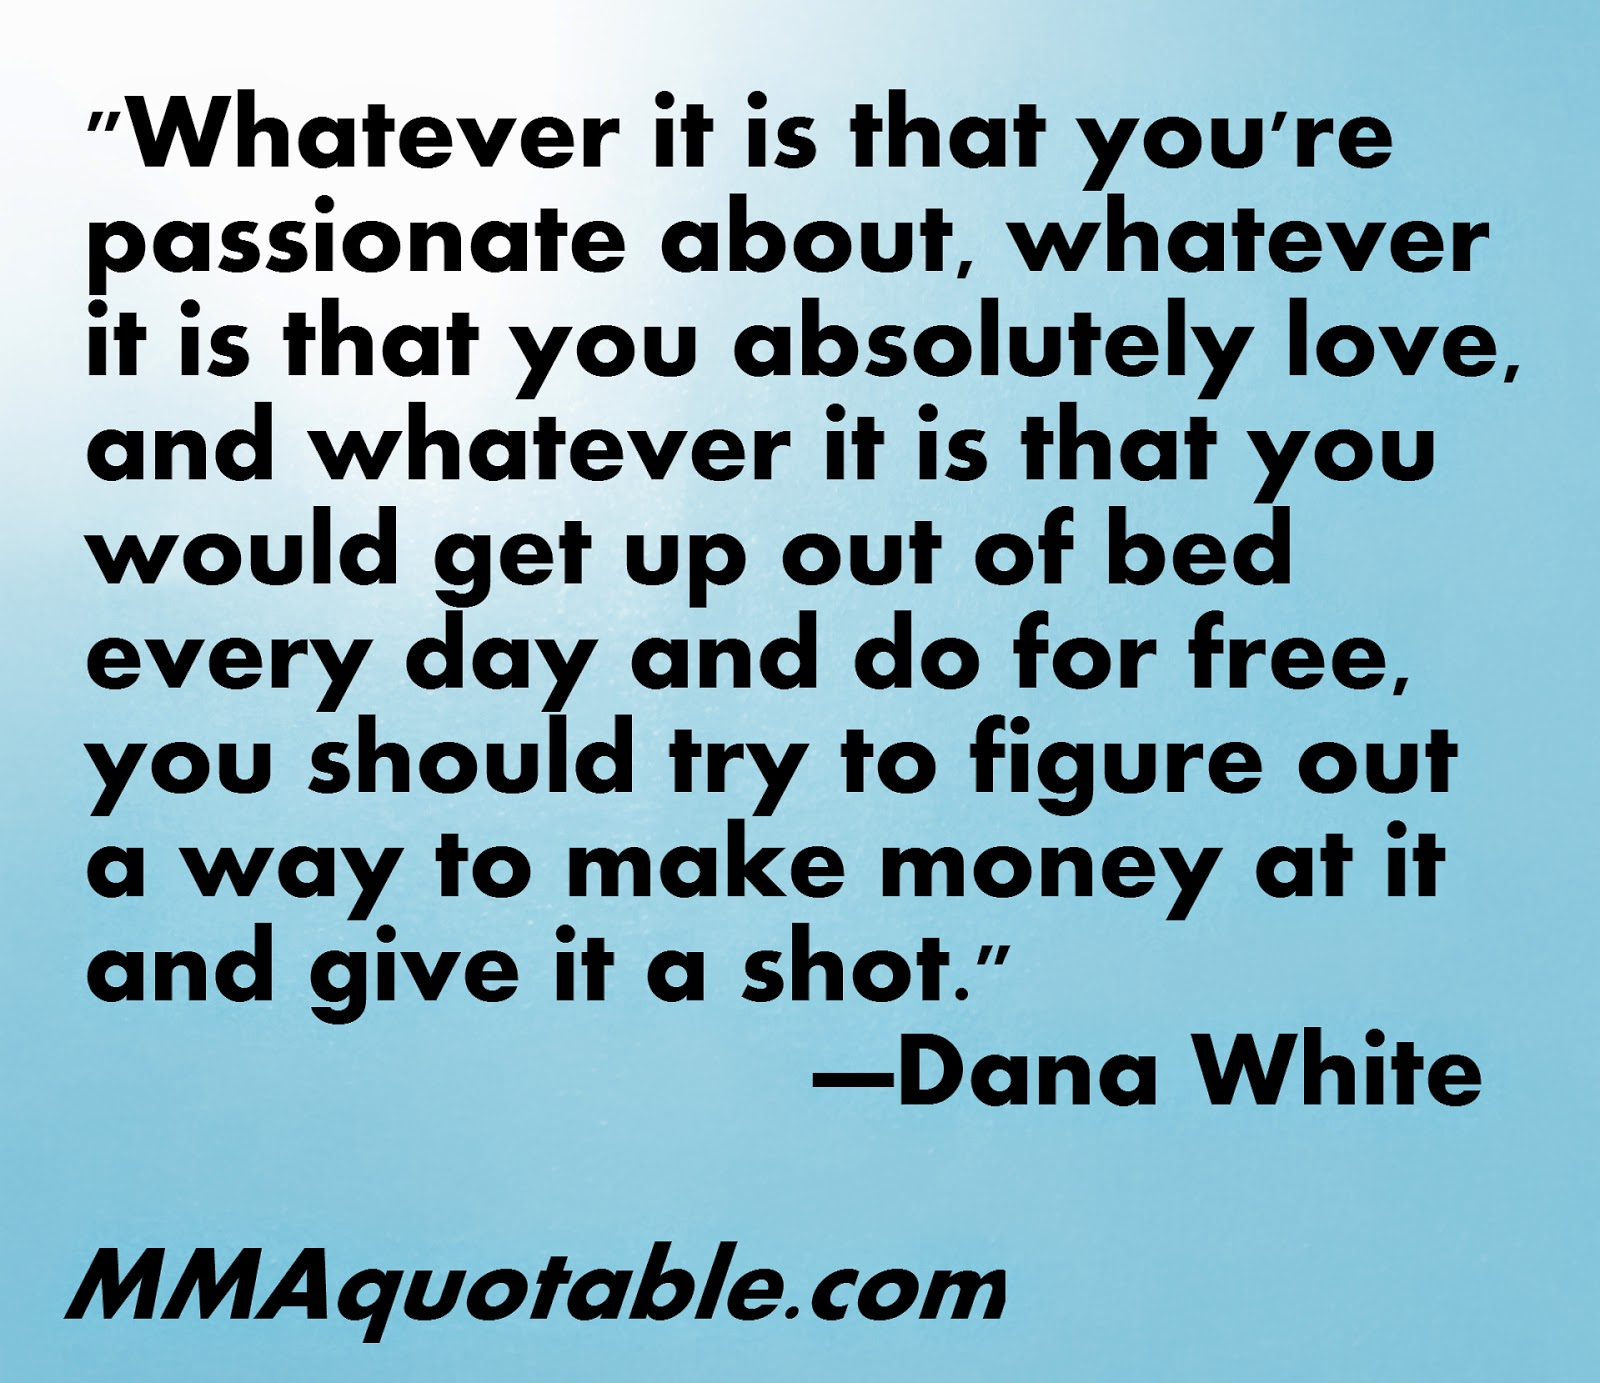 Jonathan Edwards Quotes Motivational Quotes With Pictures Many Mma & Ufc Dana White Quotes